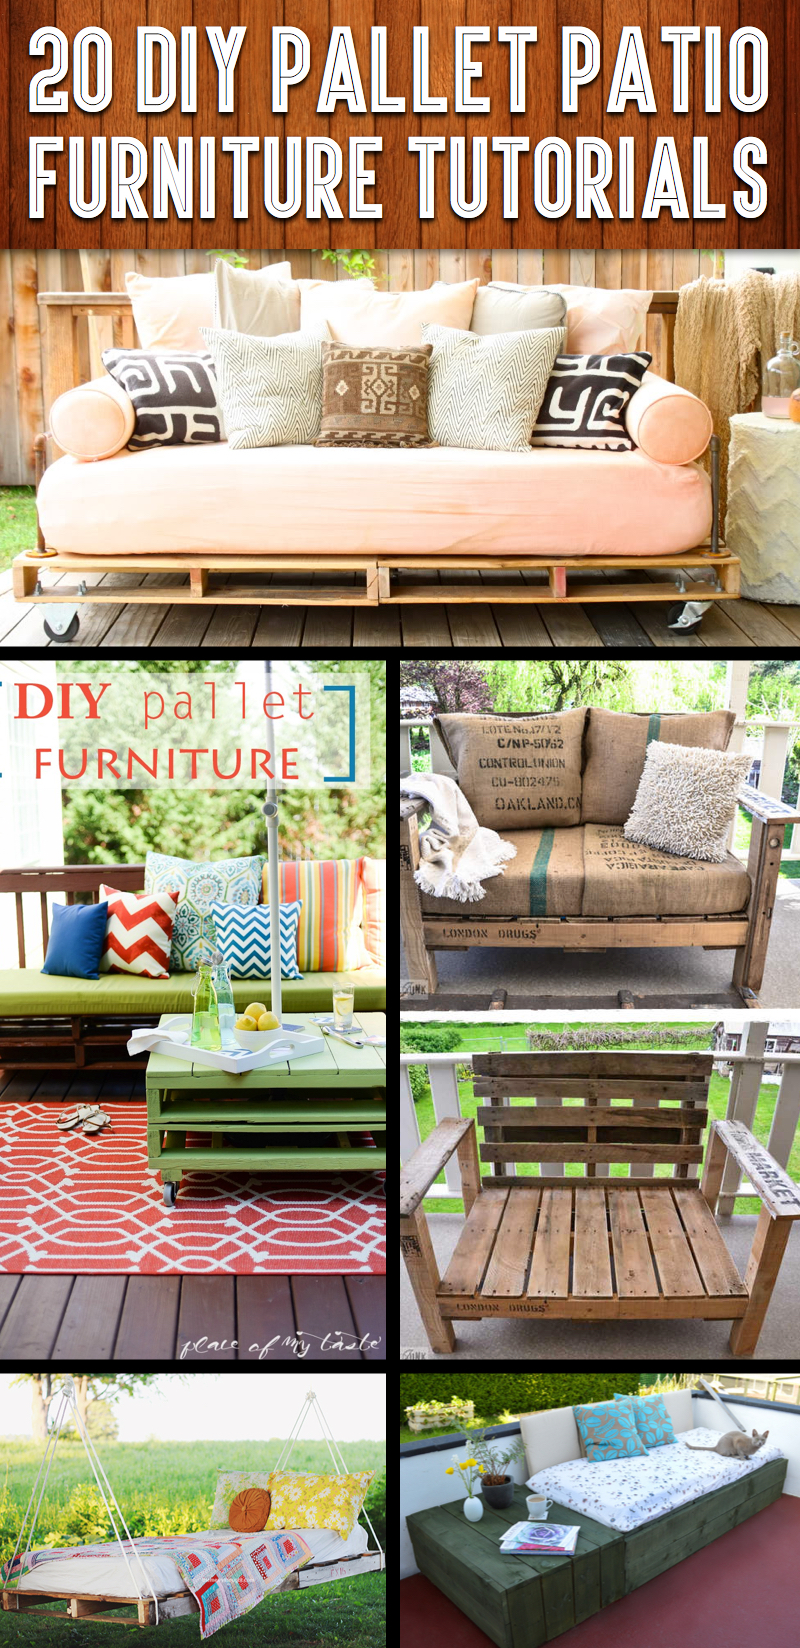 20 diy pallet patio furniture tutorials for a chic and practical outdoor patio